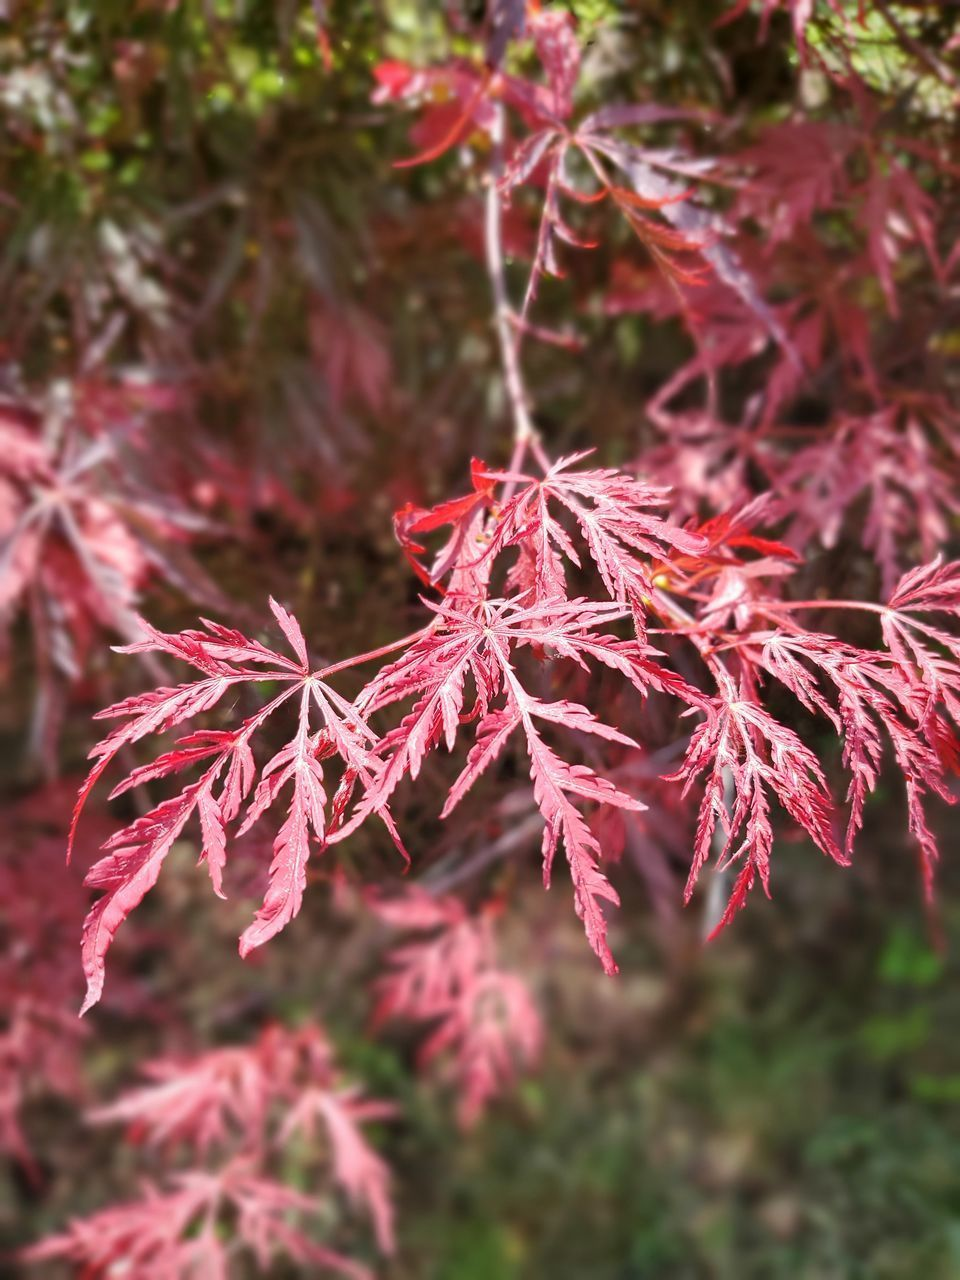 CLOSE-UP OF AUTUMN LEAVES ON PLANT